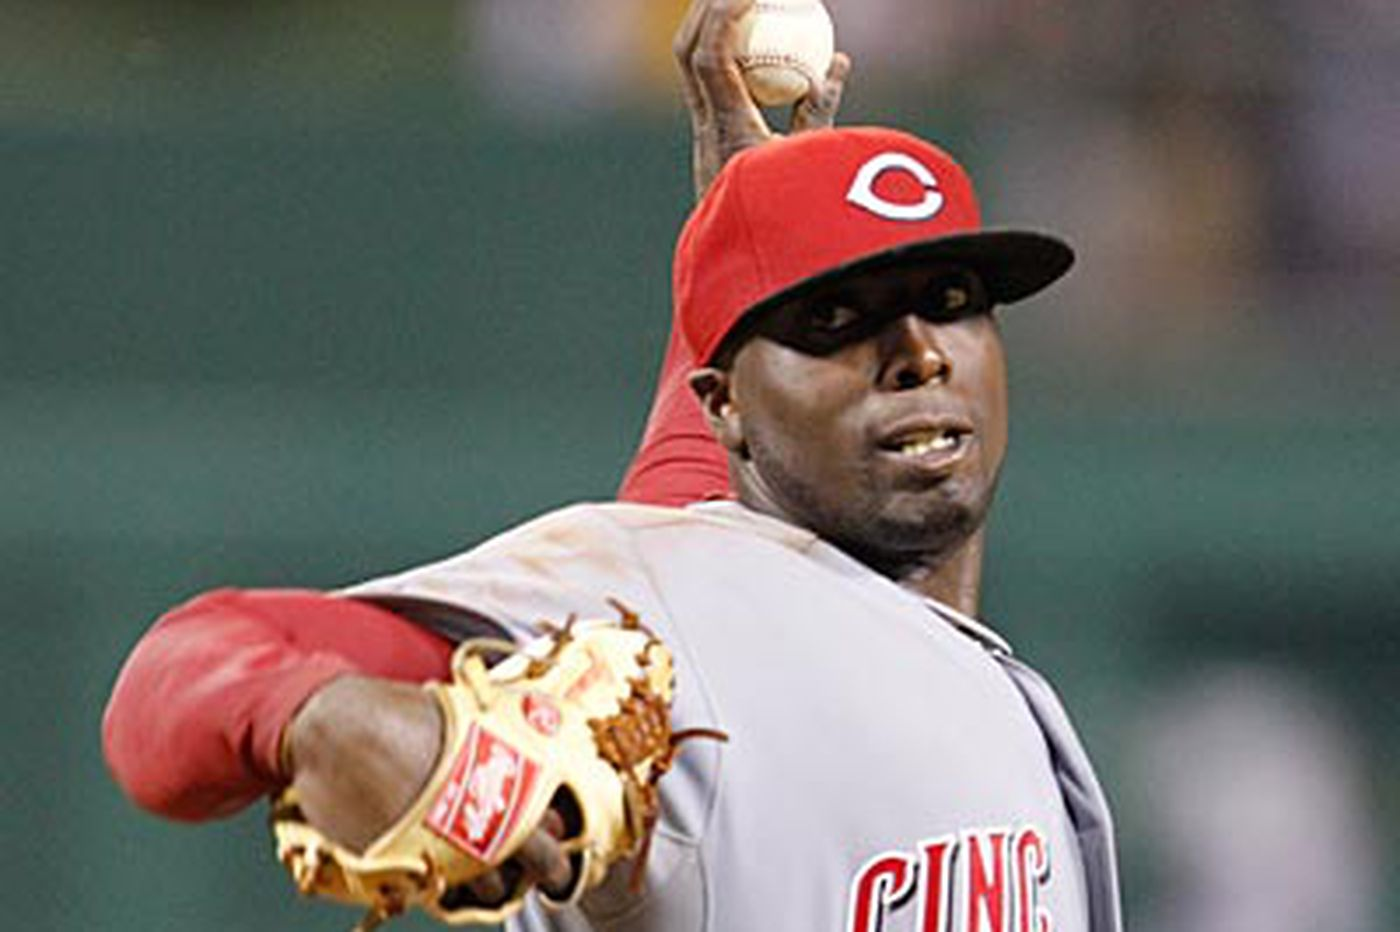 Phillies sign Dontrelle Willis to 1-year deal